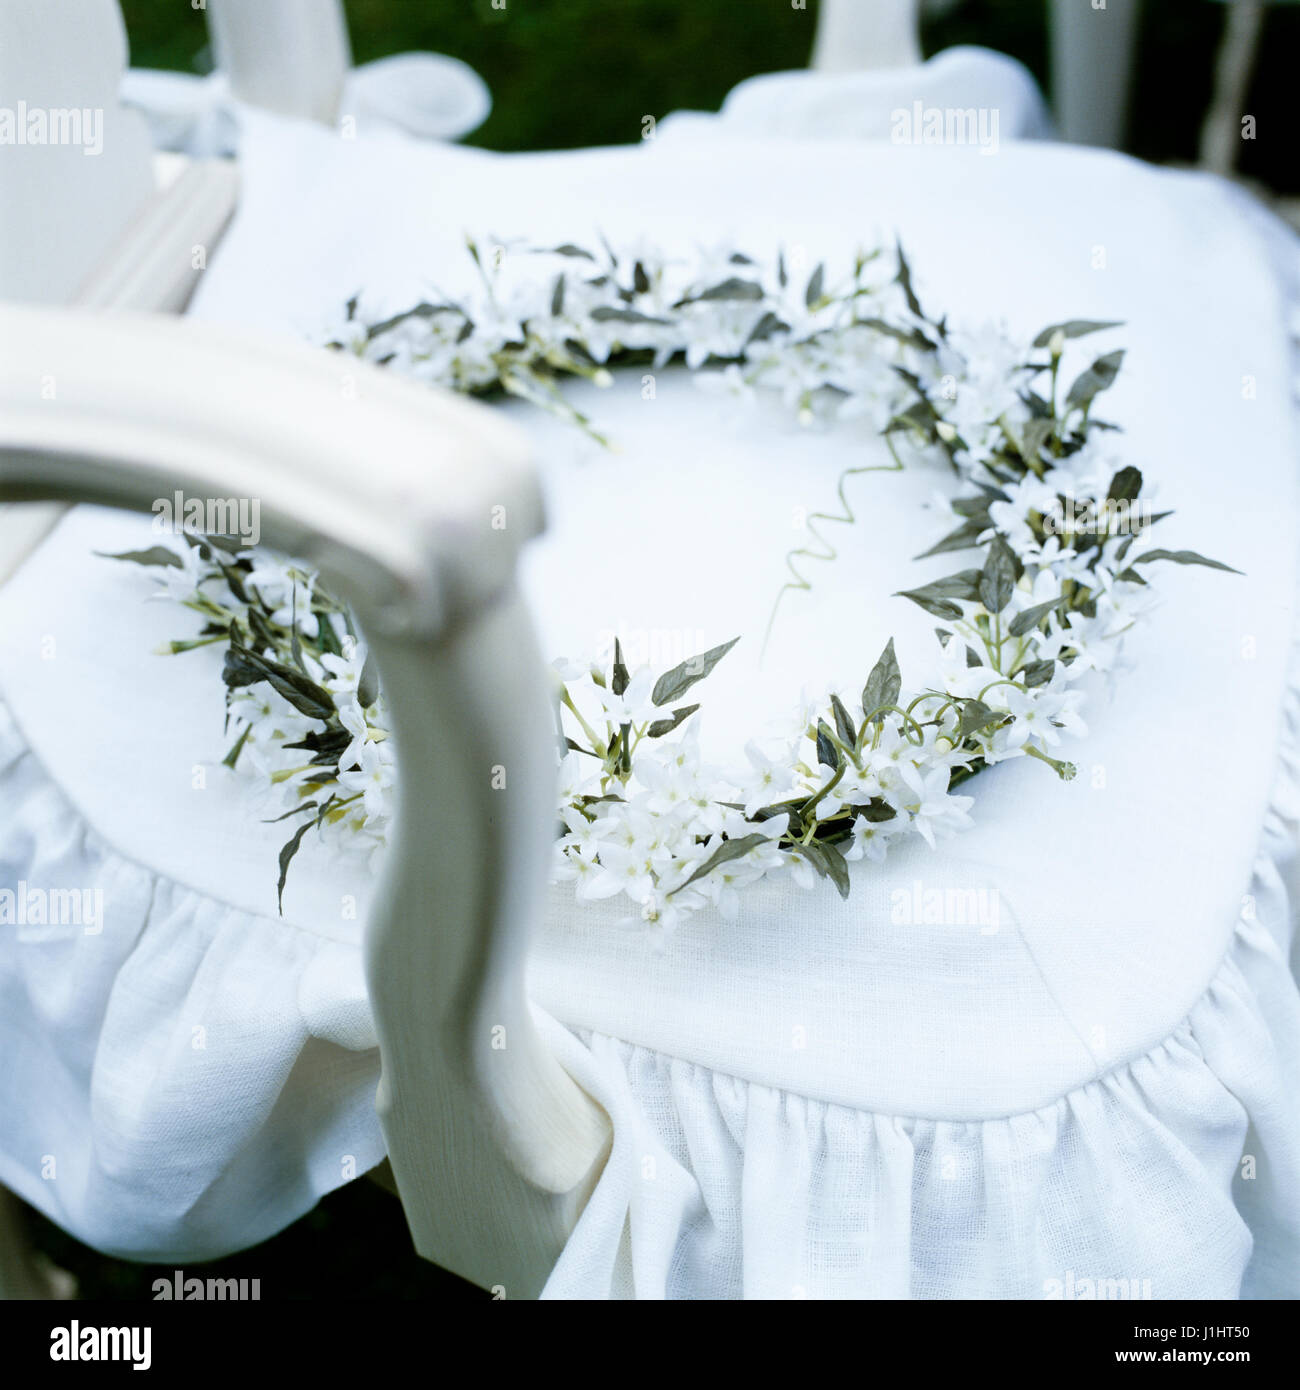 Wreath of white flowers on chair. - Stock Image